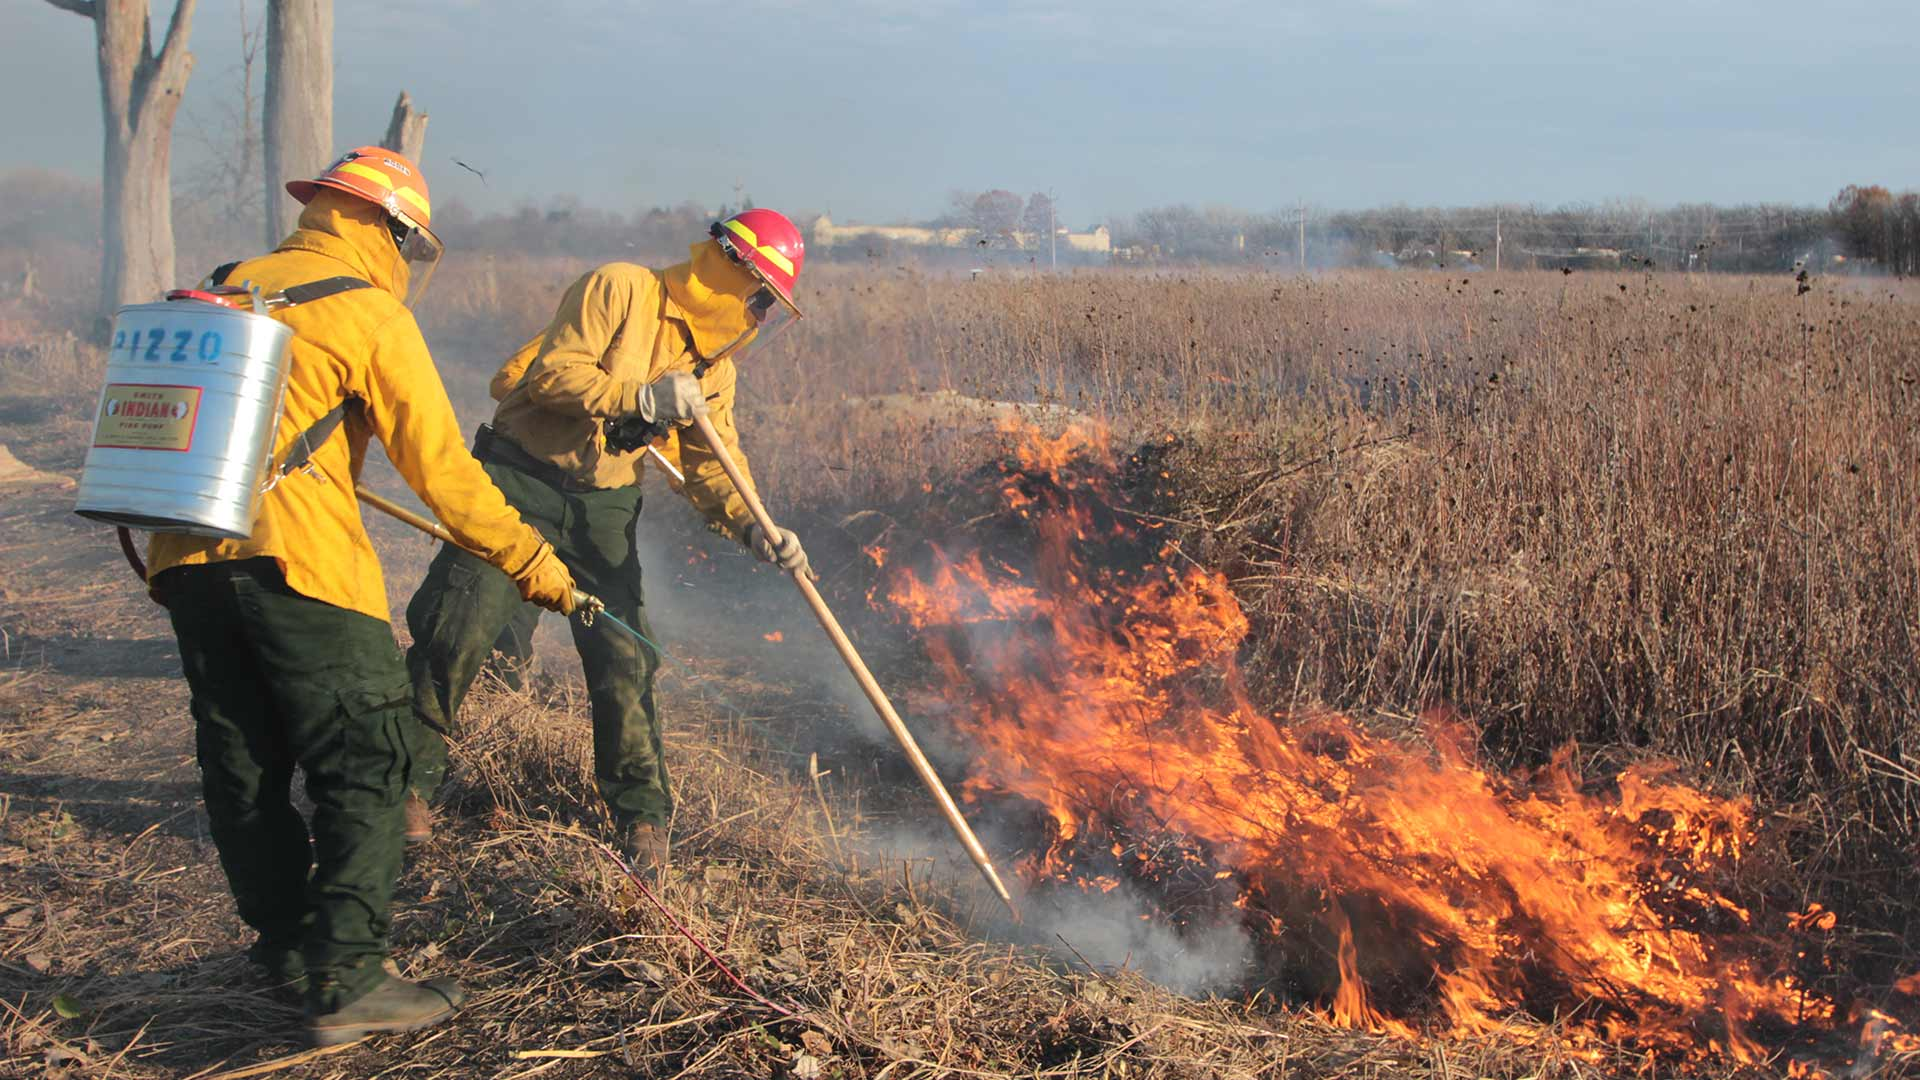 Prescribed fire services performed in a natural area near Lake Forest, IL.